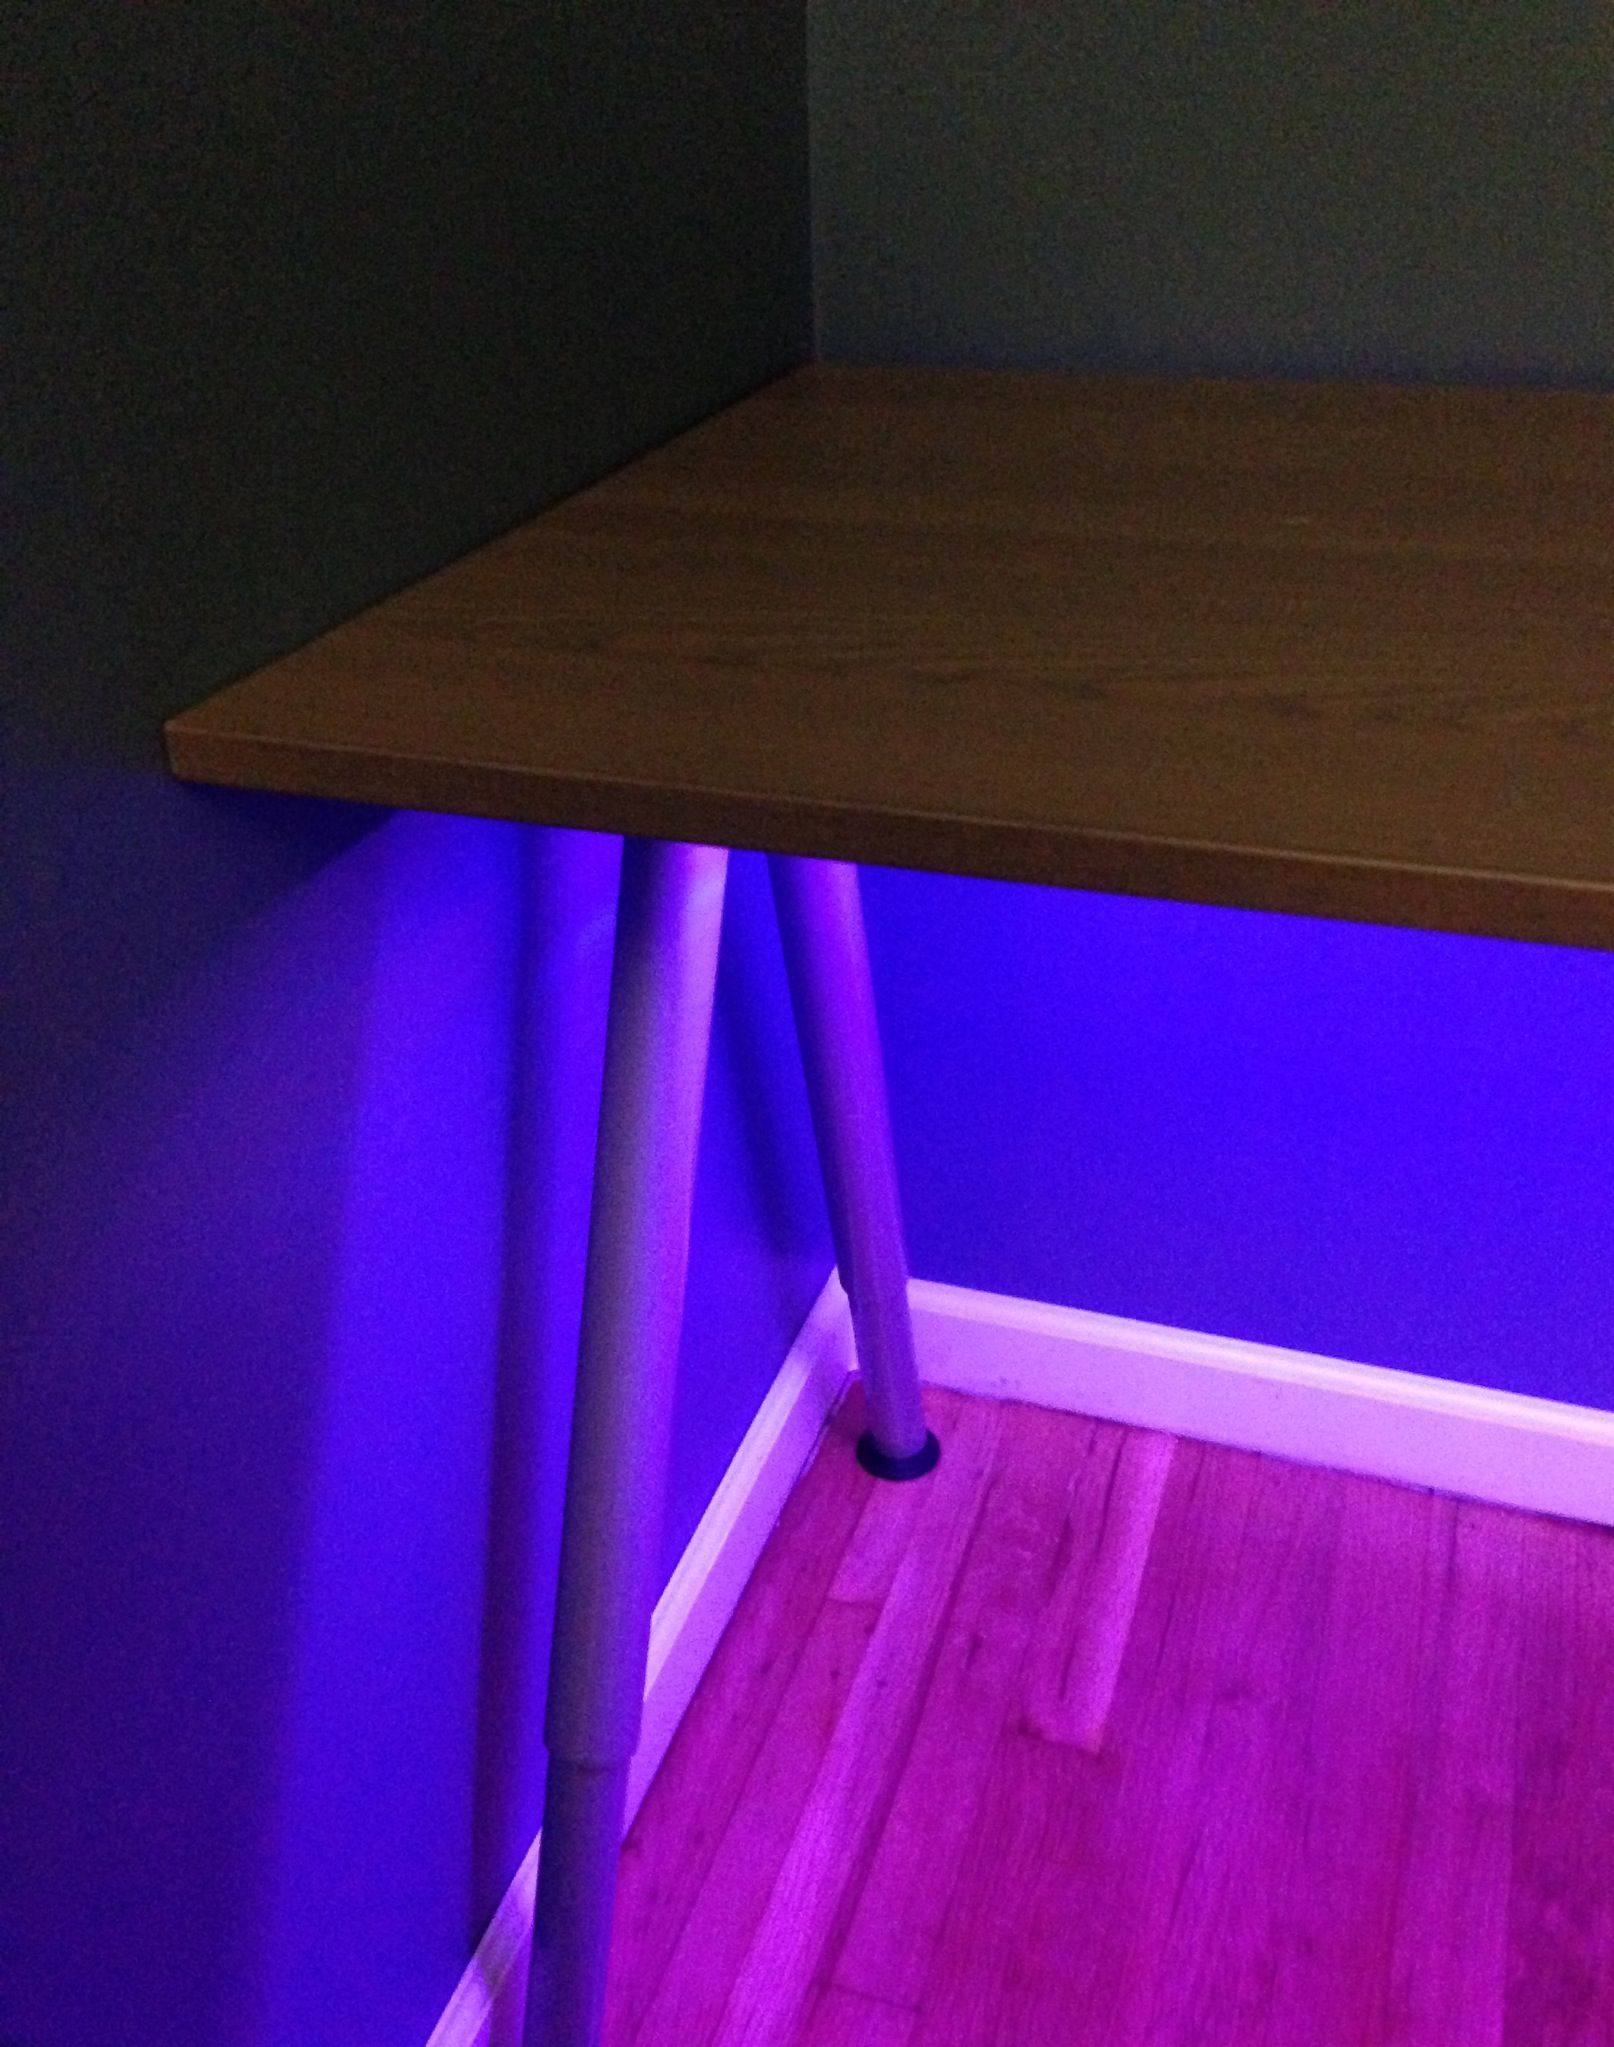 Dioder Leds From Ikea Neat Idea To Place Lights Under The Desk